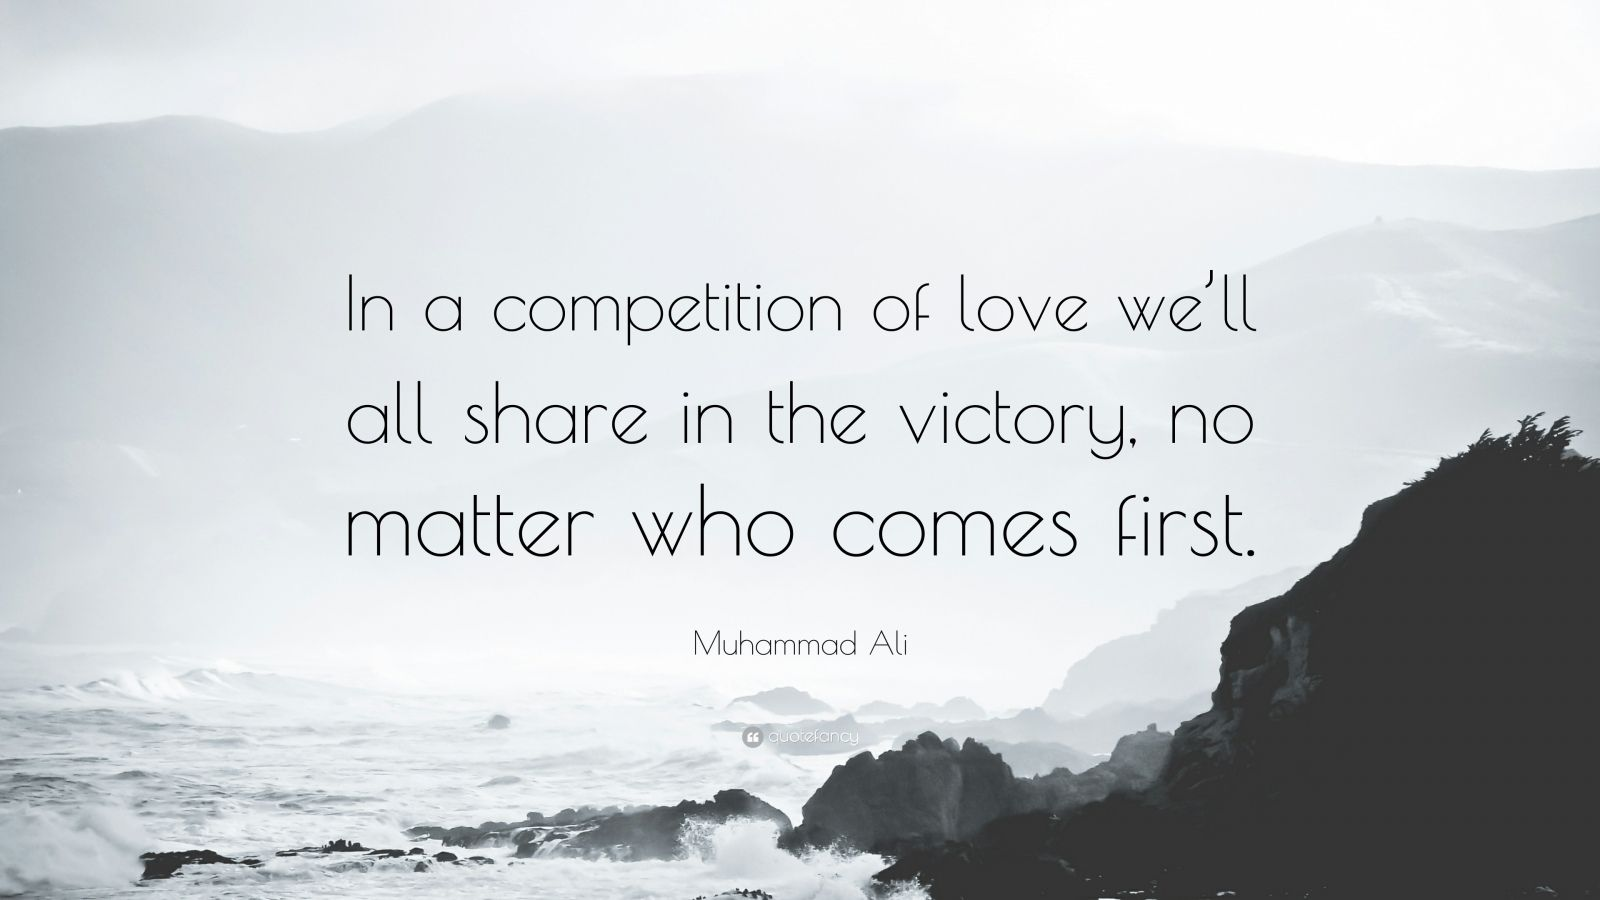 """Muhammad Ali Quote: """"In a competition of love we'll all share in the victory, no matter who comes first."""""""